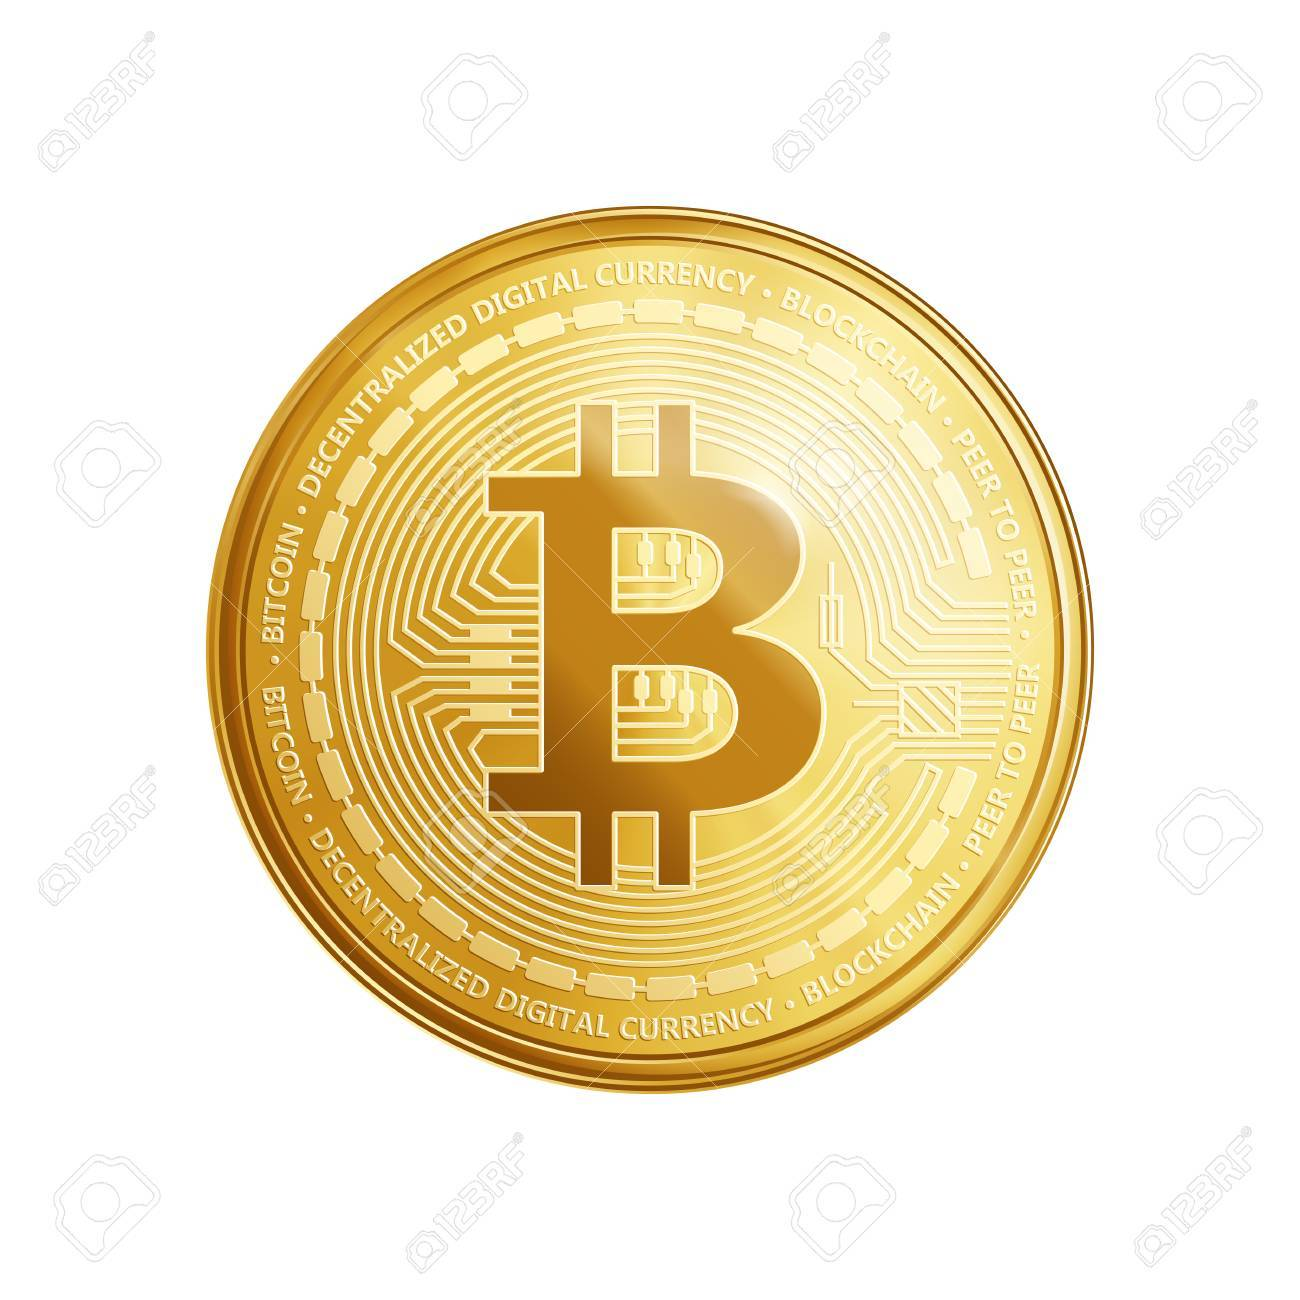 Golden Bitcoin Coin Crypto Currency Symbol Isolated On White Background Realistic